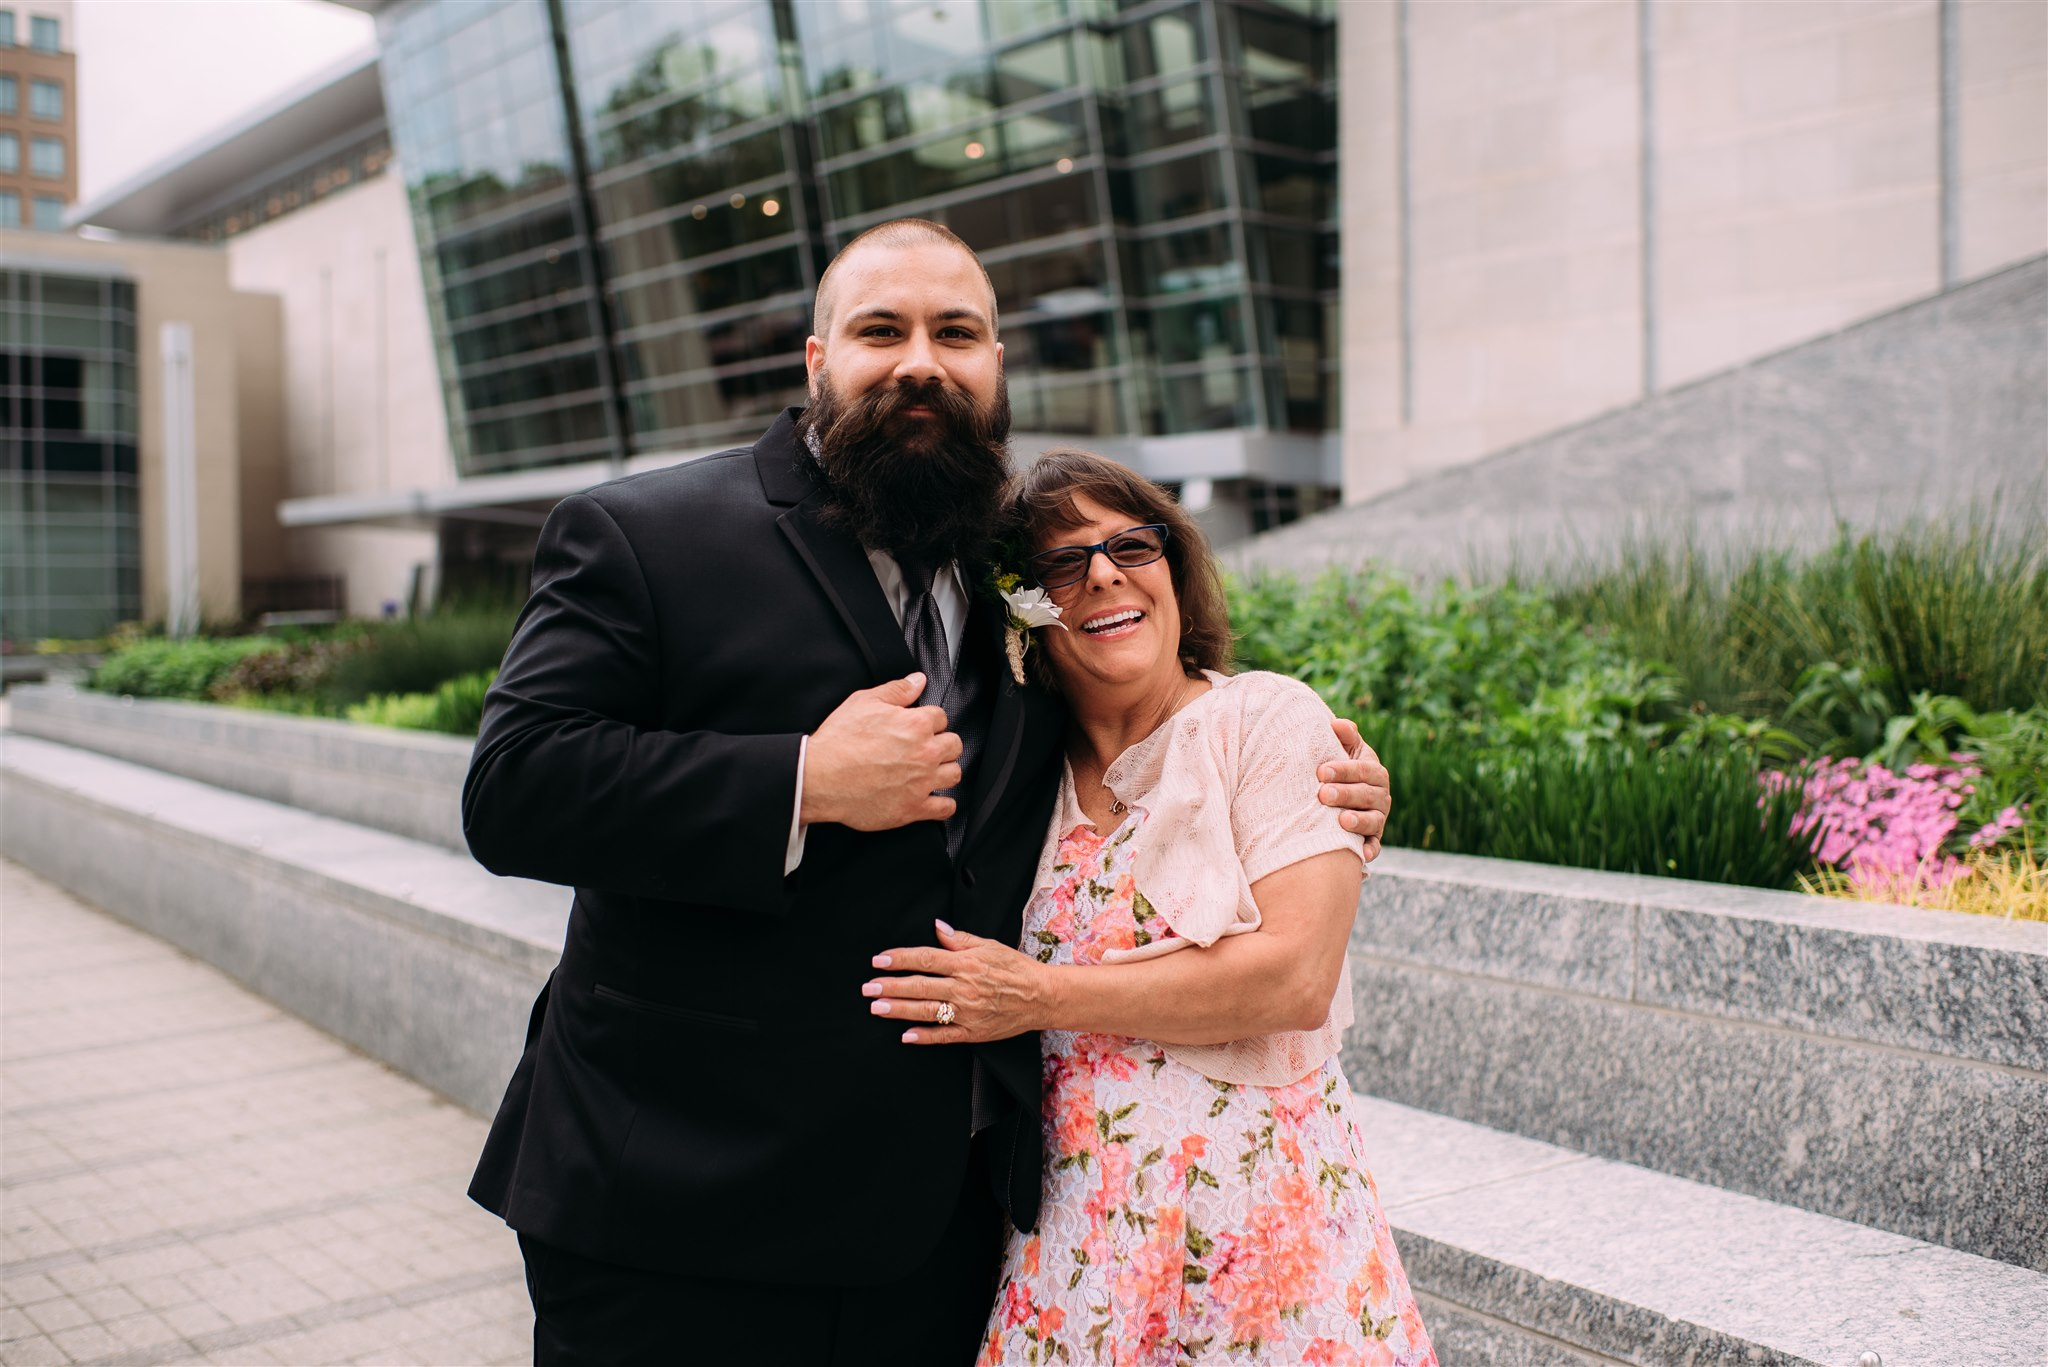 Kelly _ Todd 8876.jpgraleigh elopement photographer - downtown raleigh wedding photographer  - north carolina elopement photographer - north carolina wedding photographer